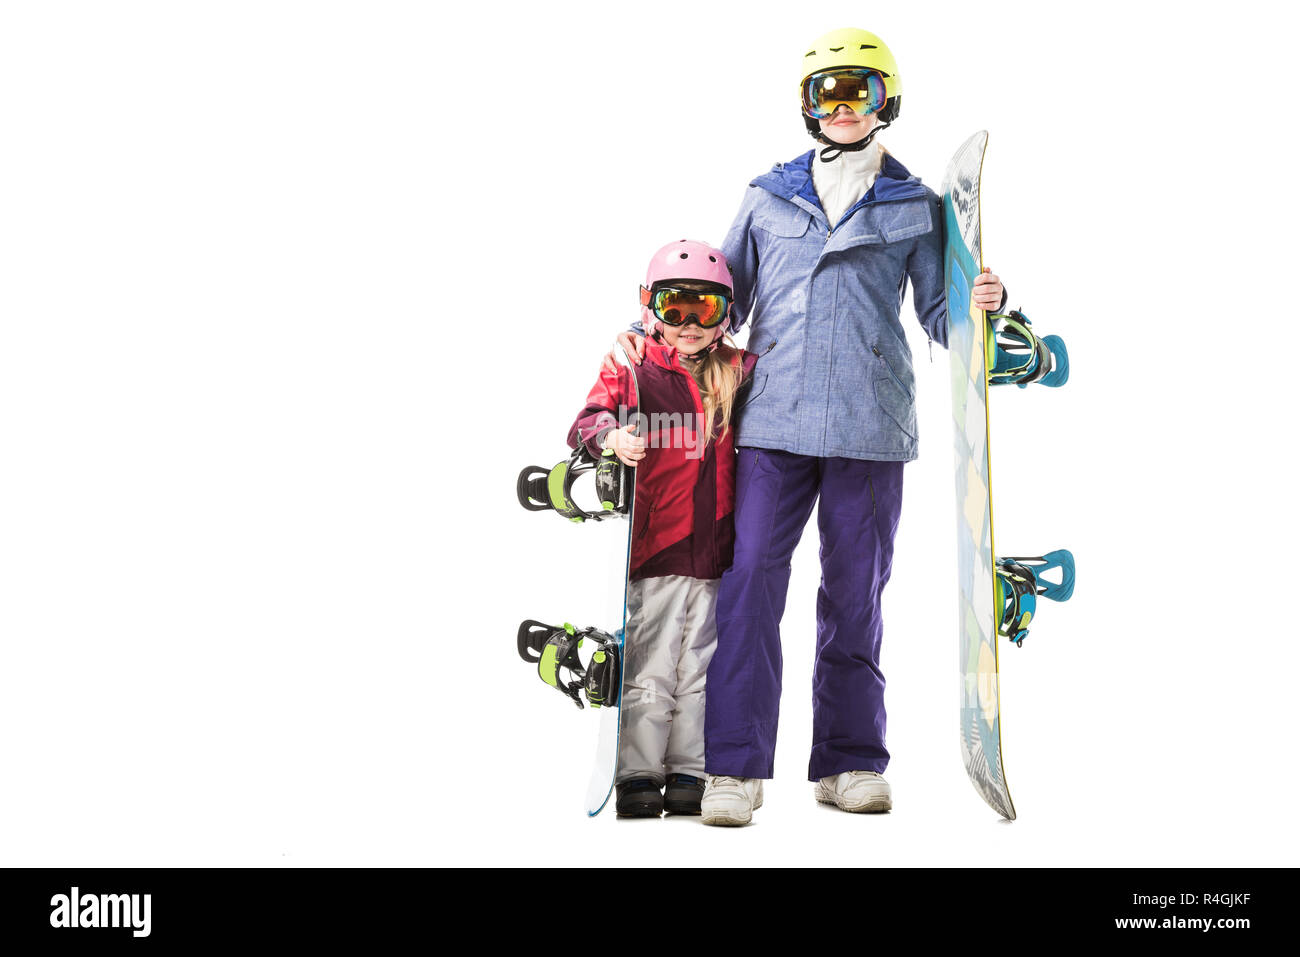 mom and preschooler daughter in ski suits, goggles and helmets with snowboards smiling isolated on white - Stock Image